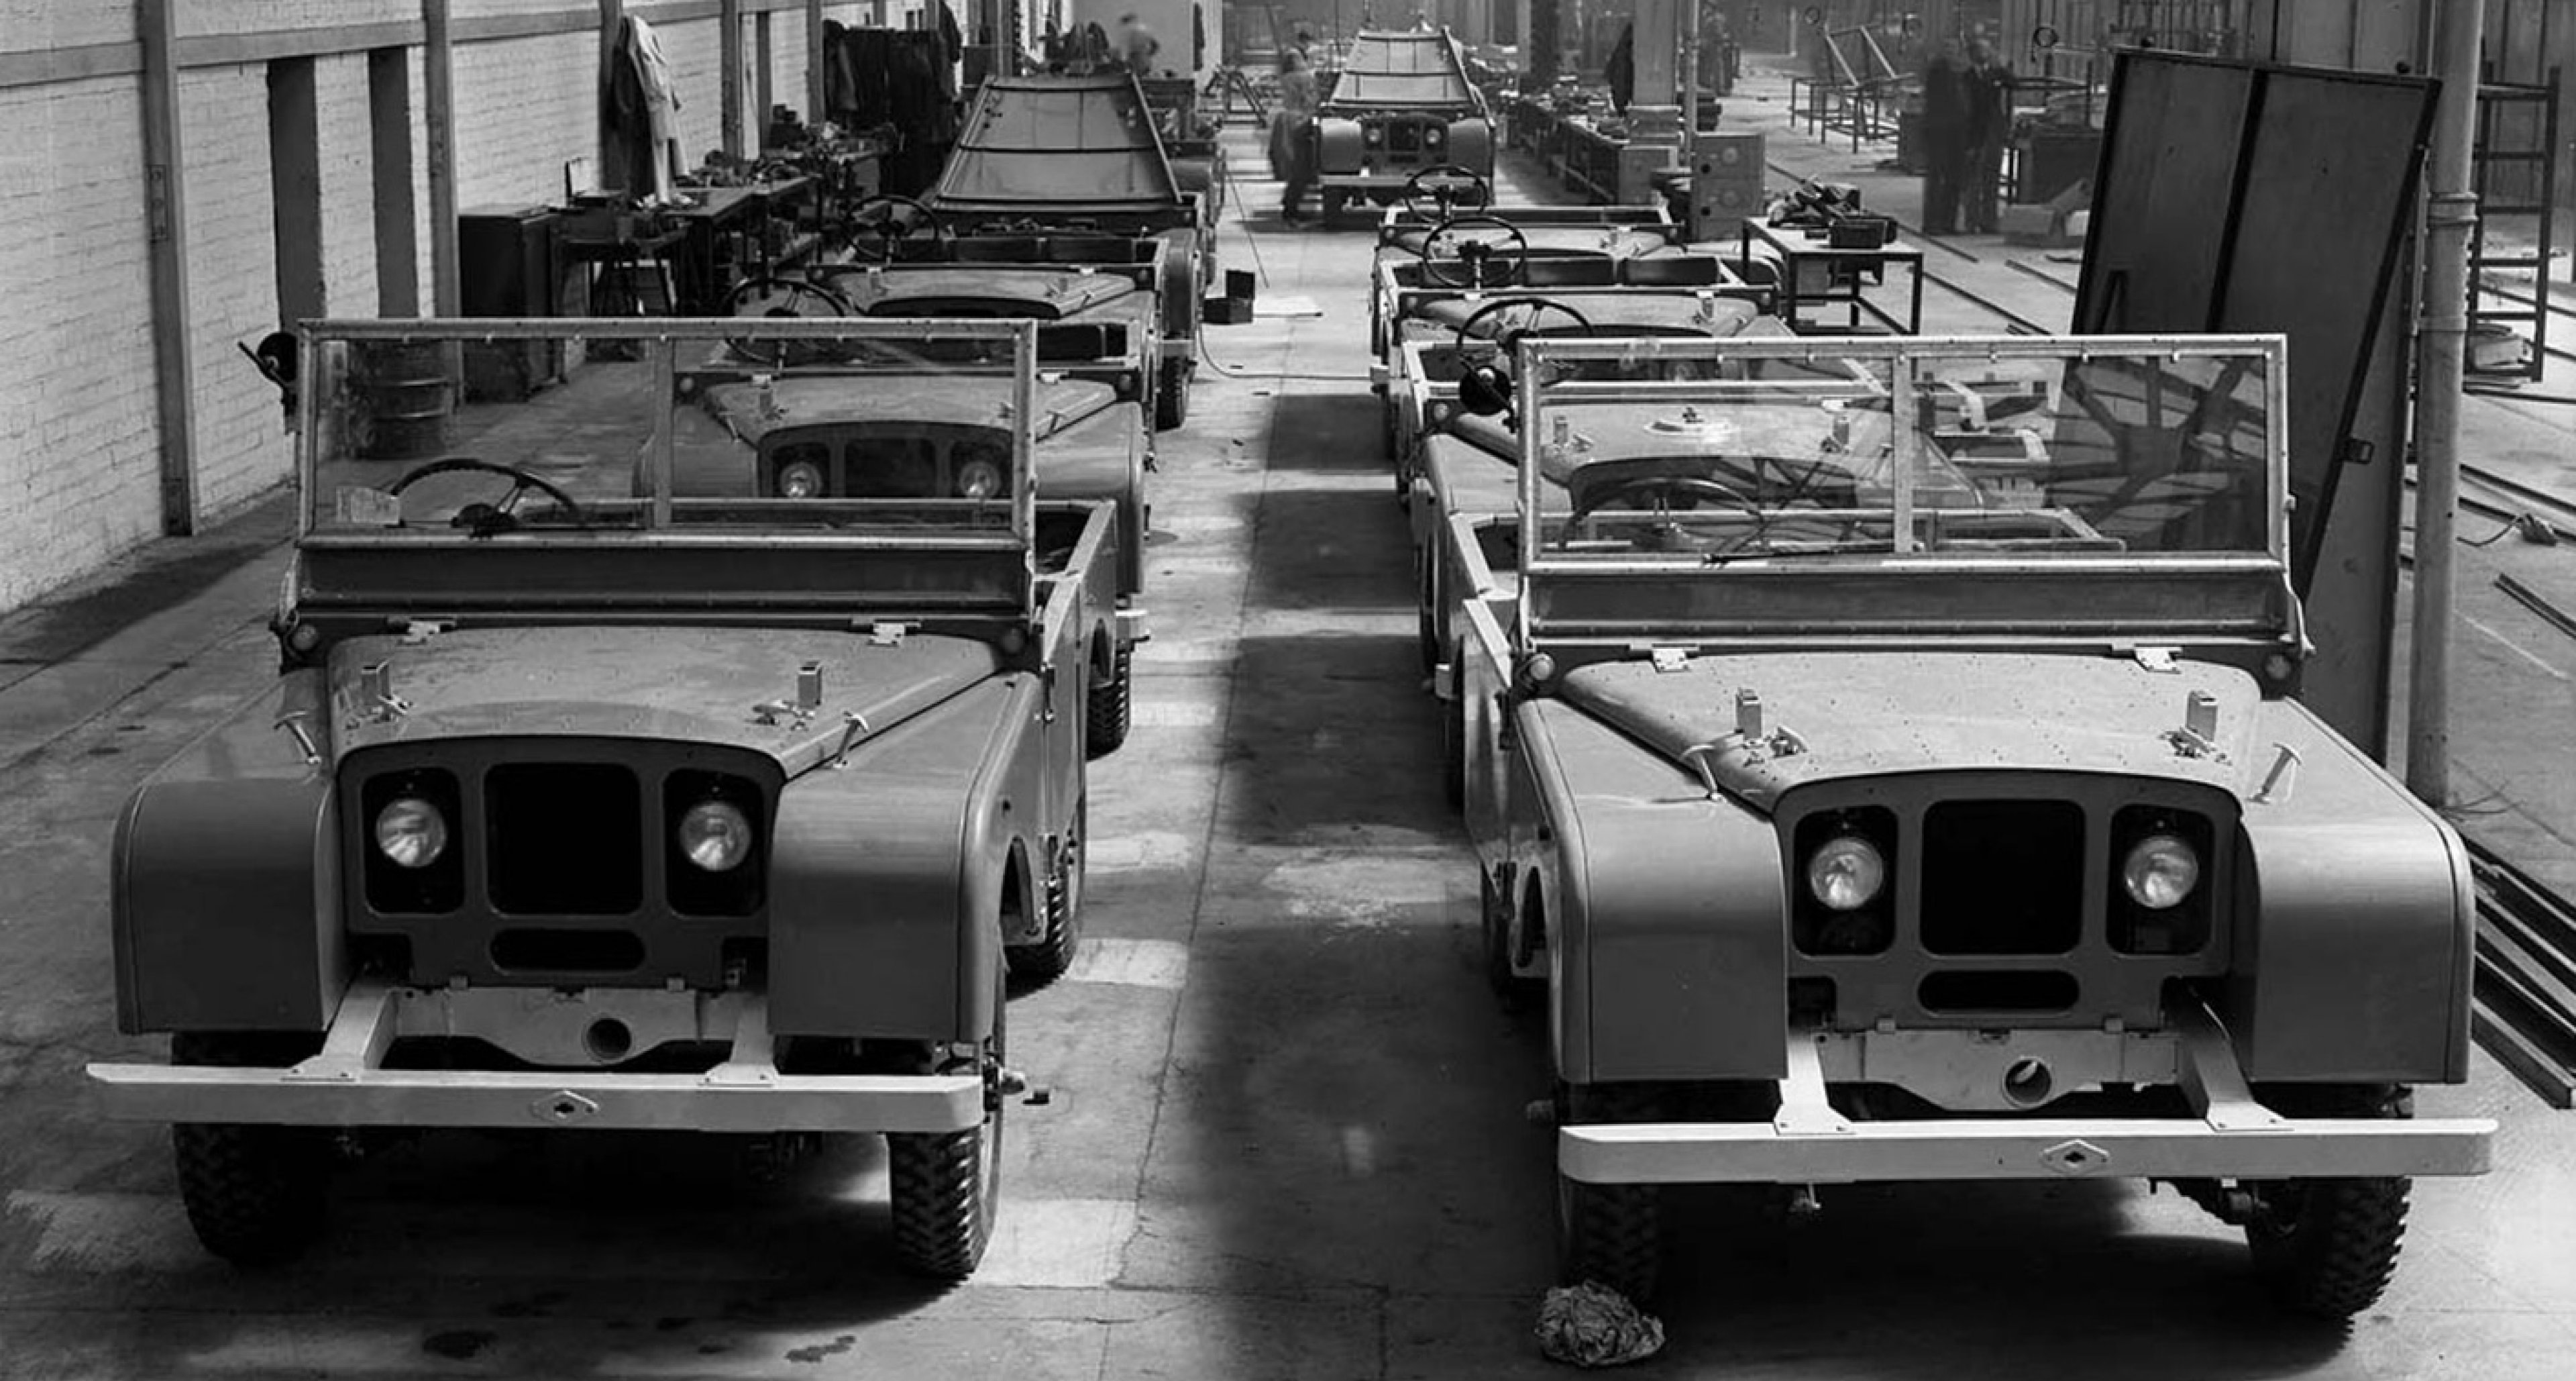 Series 1s aplenty at the Land Rover plant